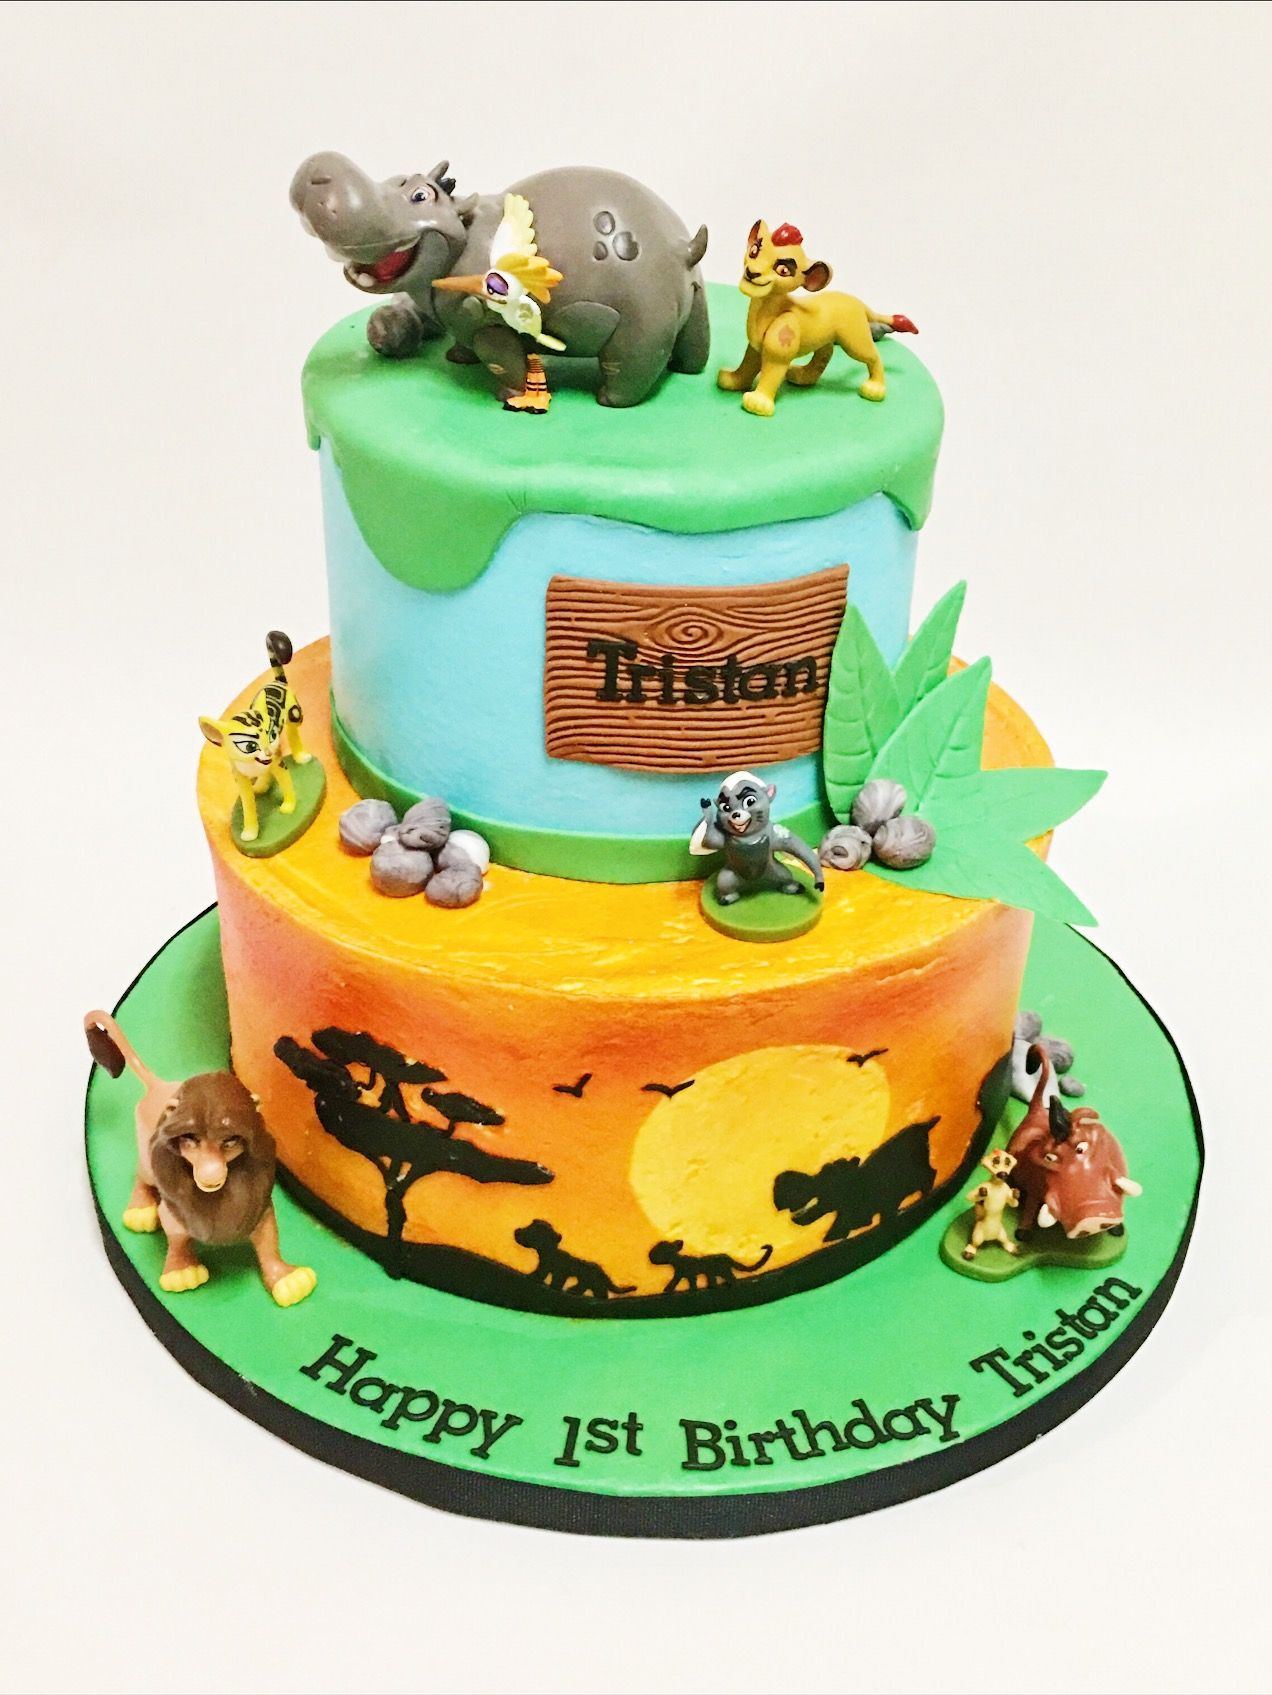 Custom Lion King Birthday Cake By A Little Slice Of Heaven Bakery In Atlanta GA